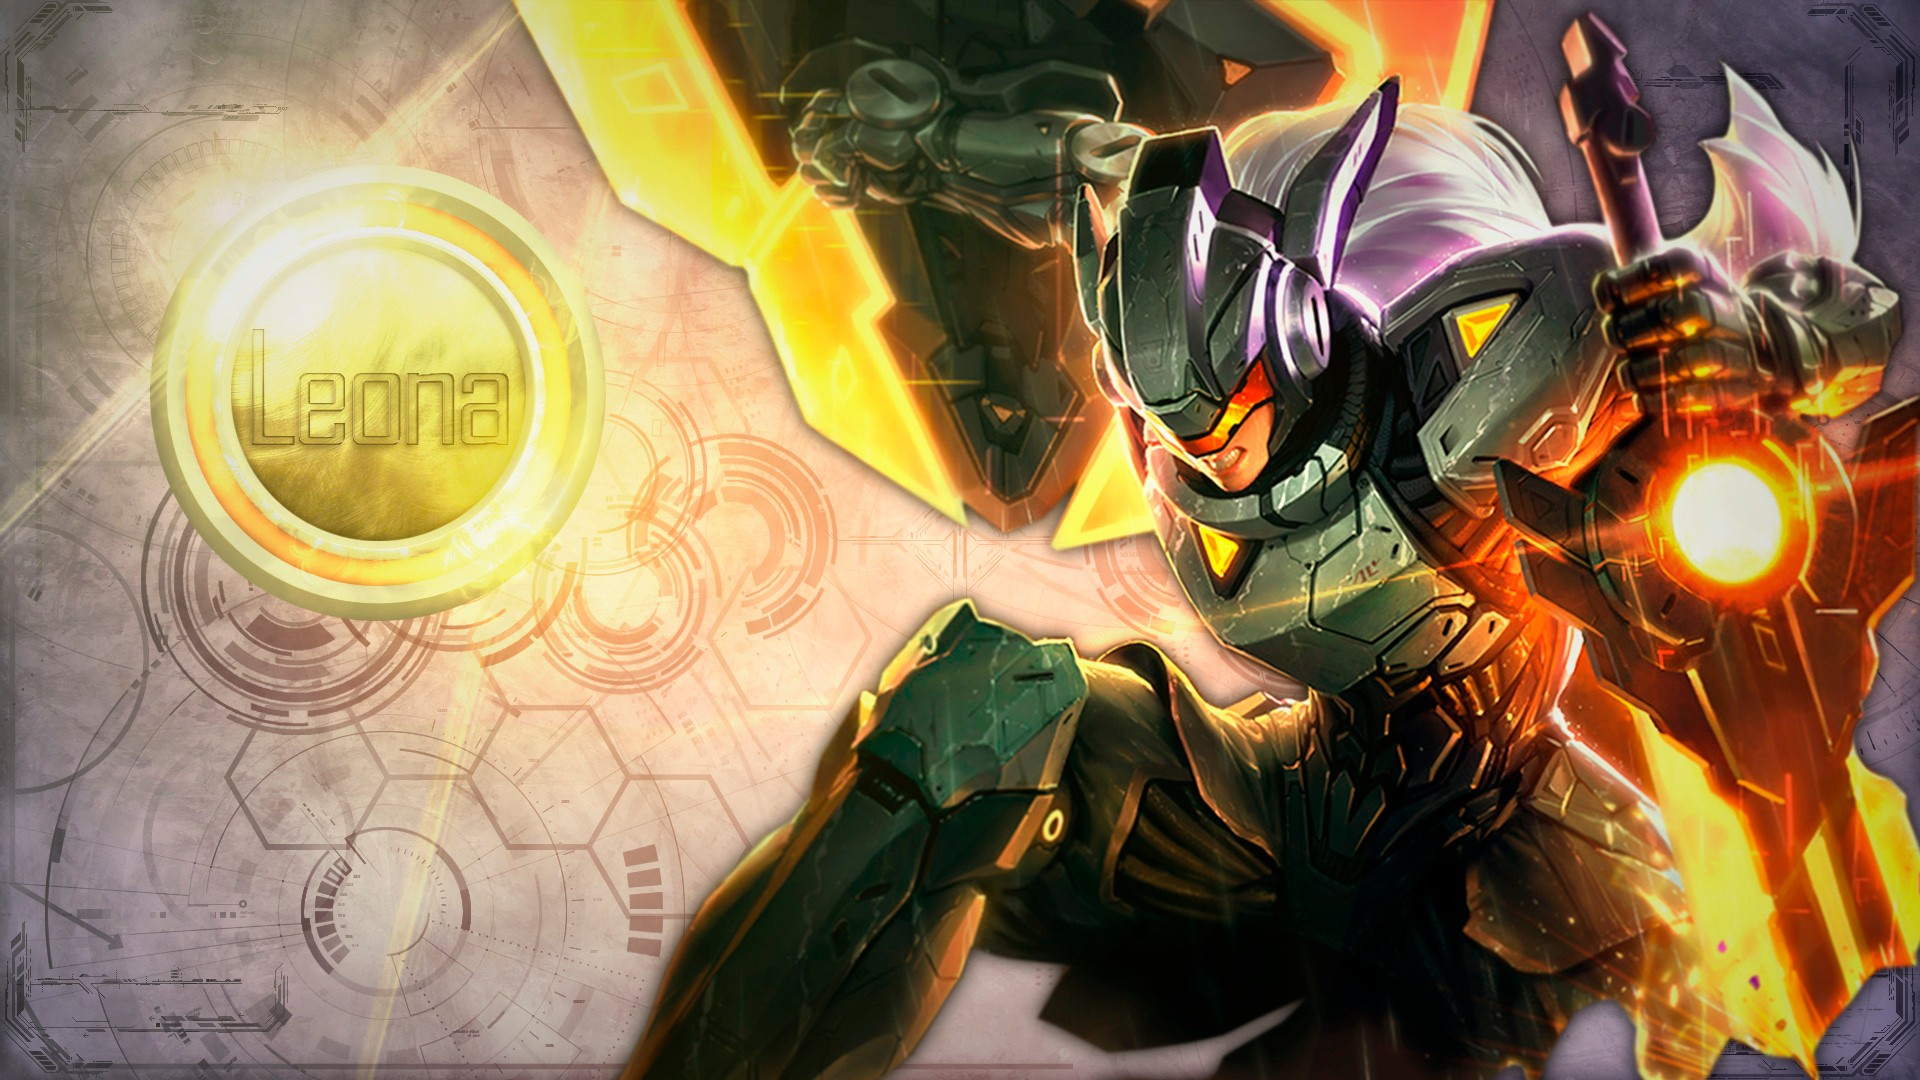 Leona Wallpapers Posted By Ryan Peltier